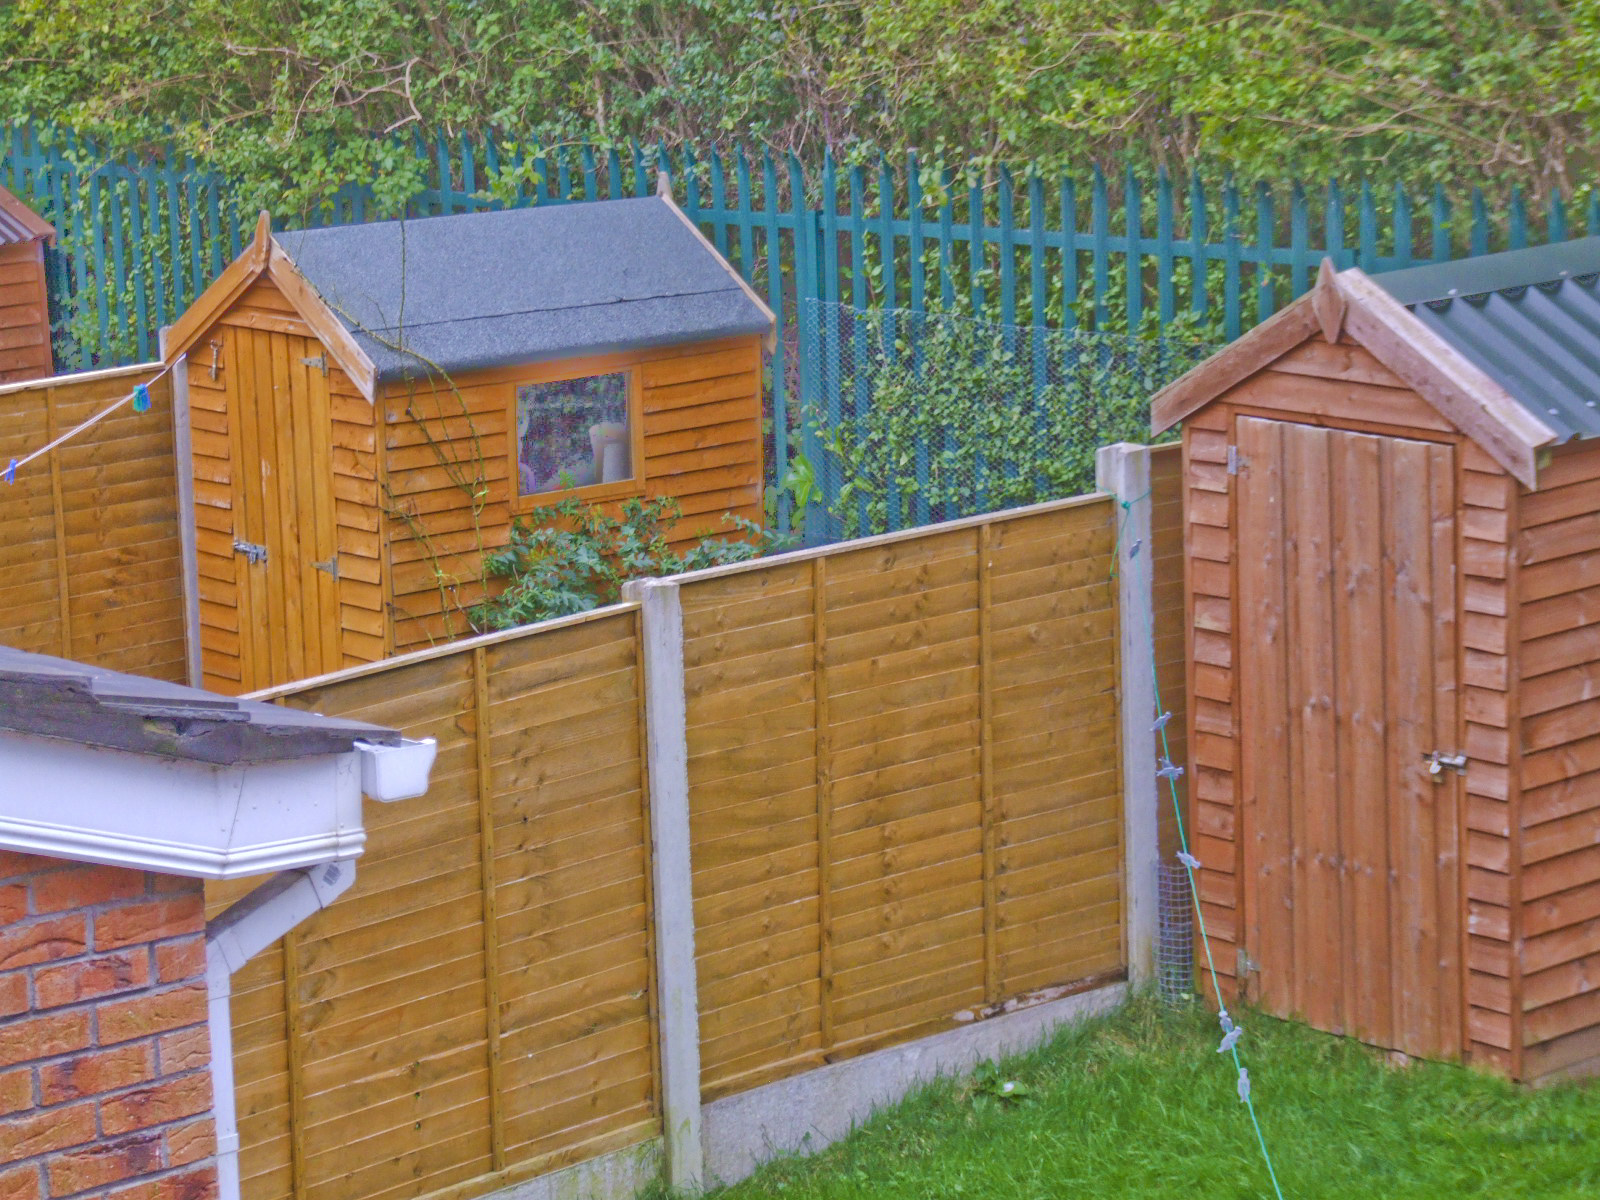 How to Build a Wood Tool Shed – Things to Consider in Building Your